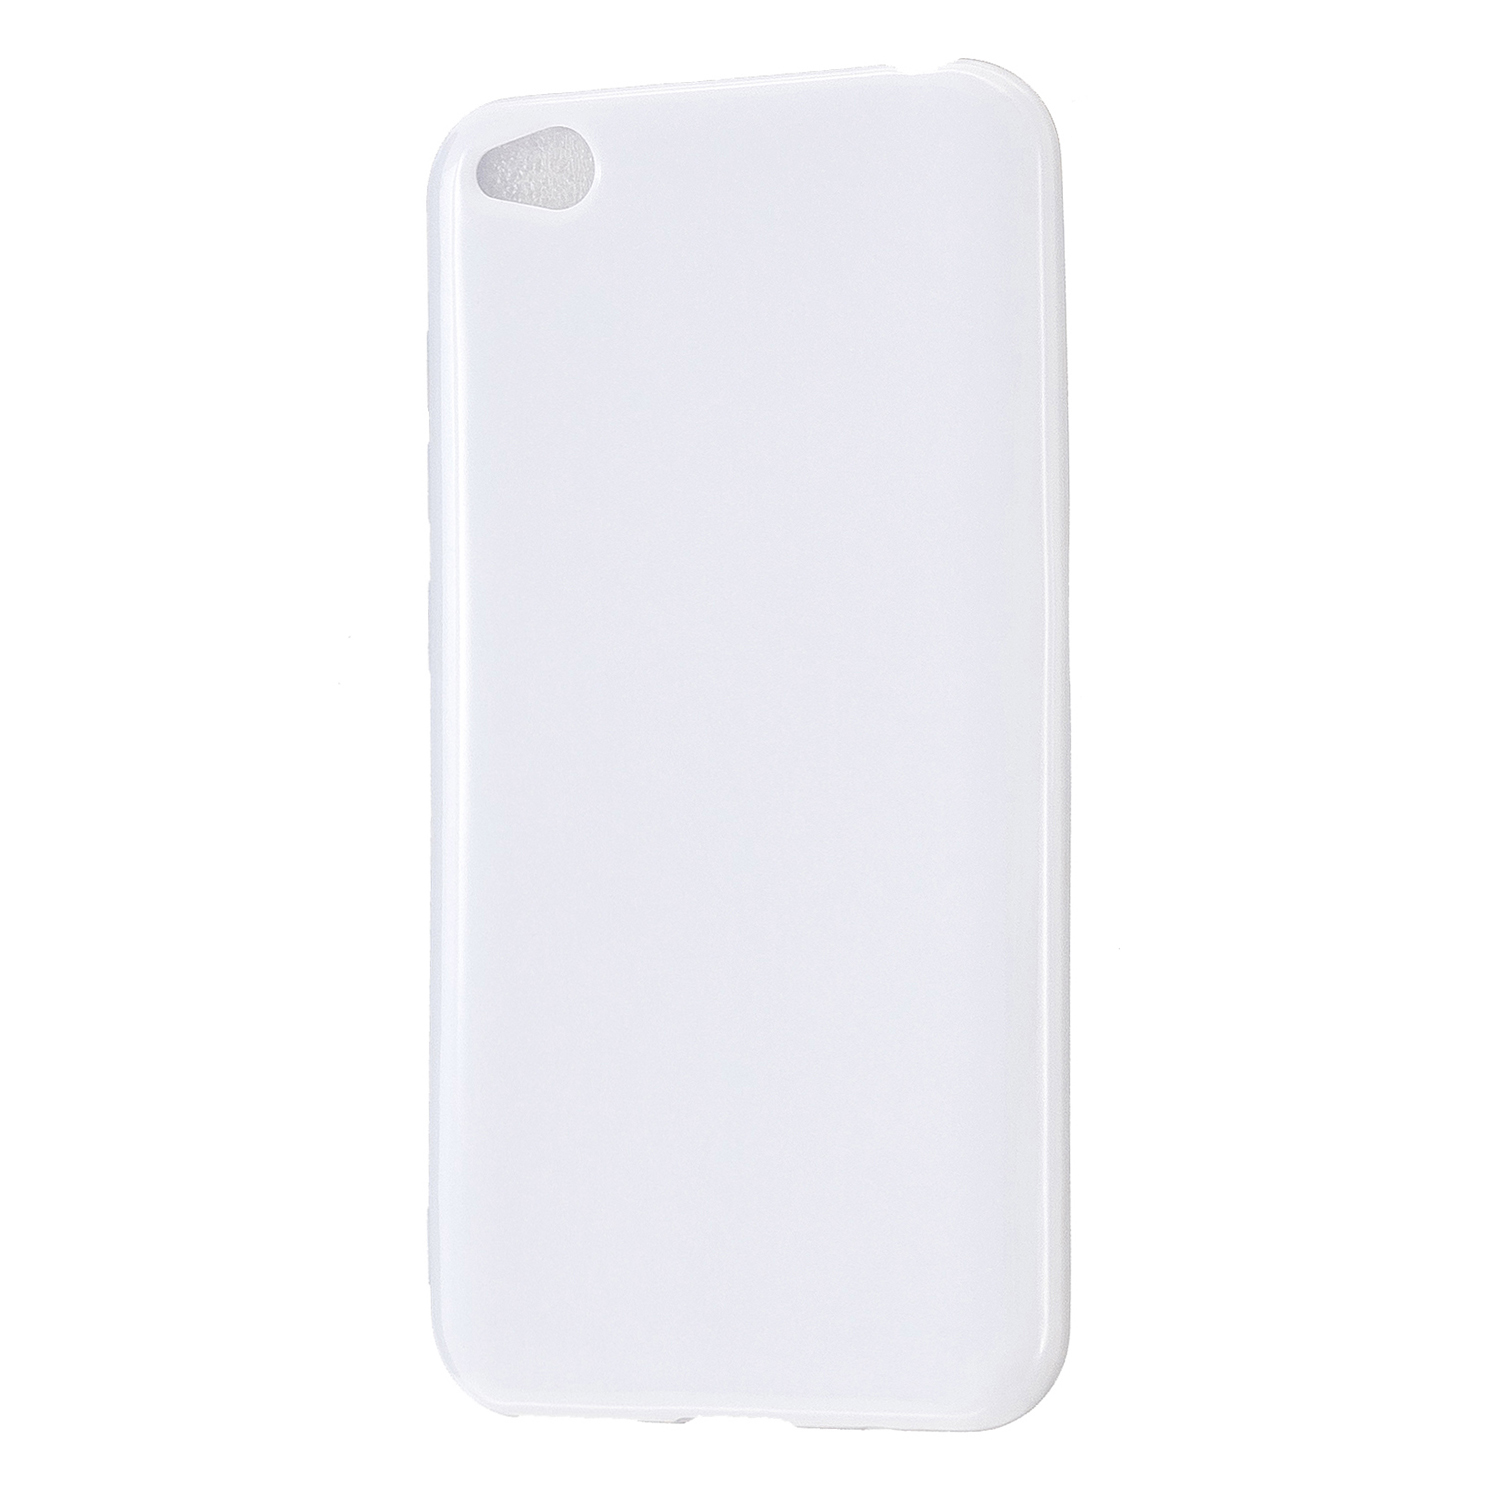 For Redmi GO/Note 5 Pro/Note 6 Pro Cellphone Cover Drop and Shock Proof Soft TPU Phone Case Classic Shell Milk white